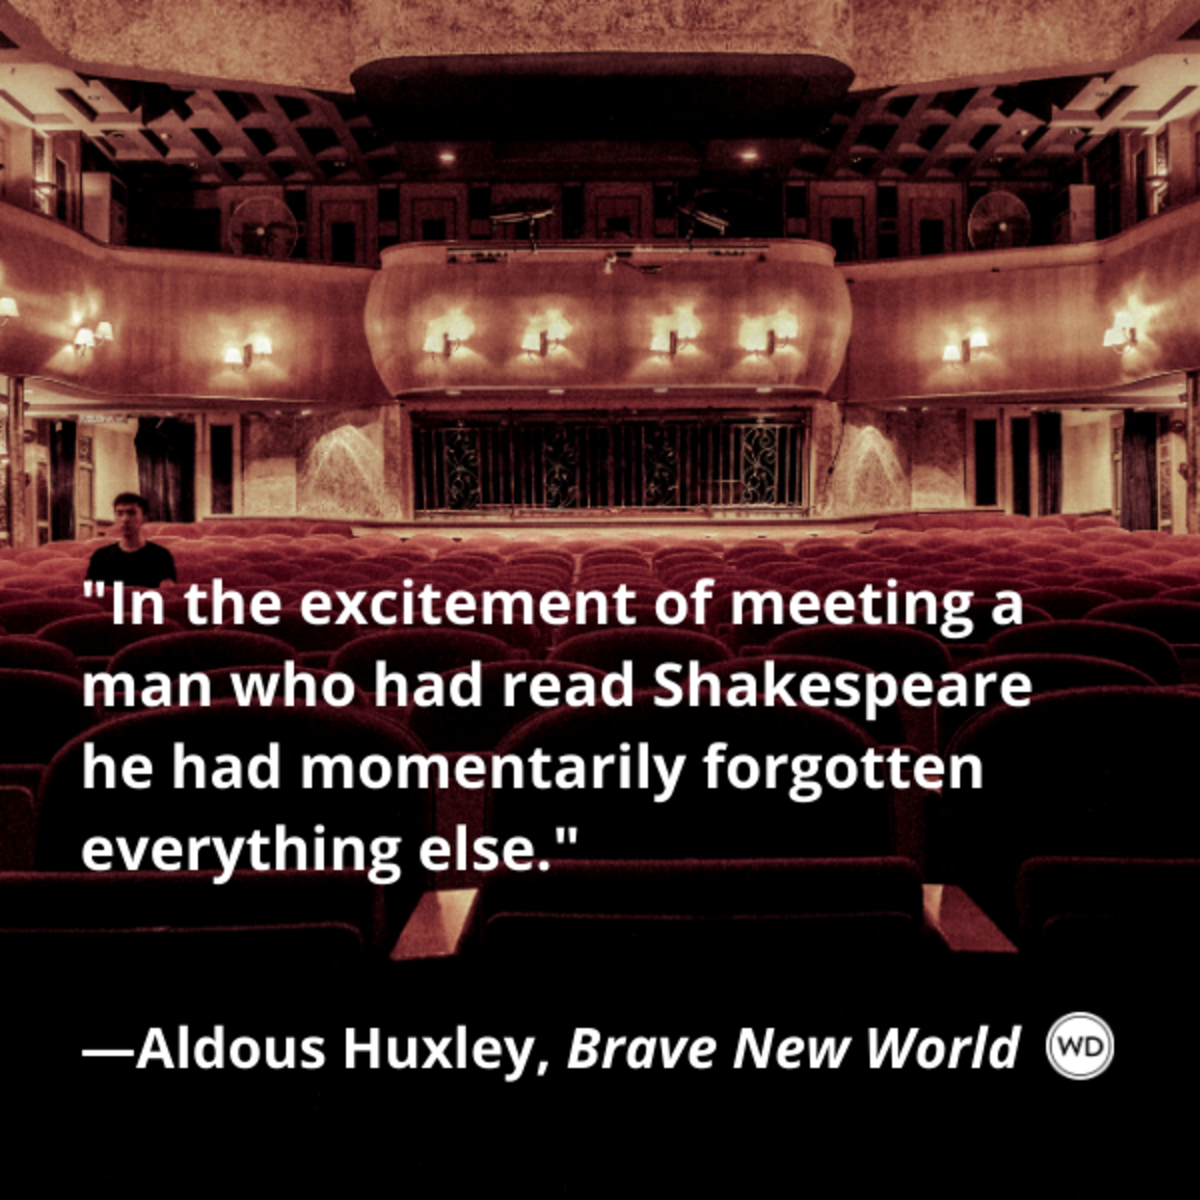 aldous_huxley_brave_new_world_quotes_in_the_excitement_of_meeting_a_man_who_had_read_shakespeare_he_had_momentarily_forgotten_everything_else